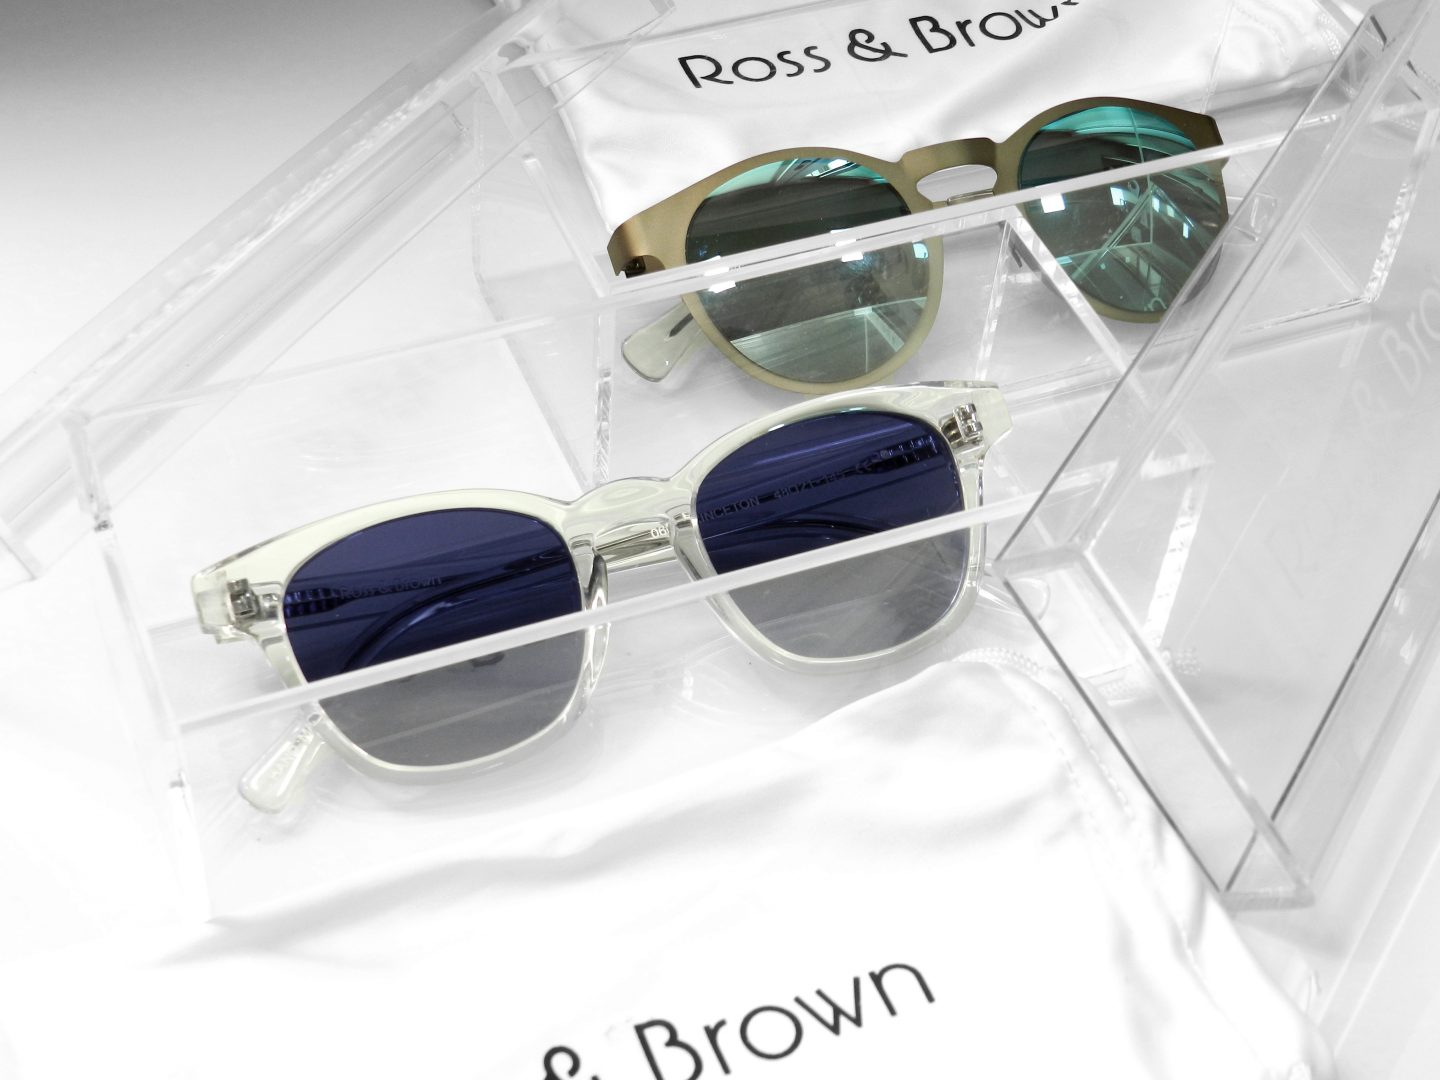 Ross & Brown Sunglasses